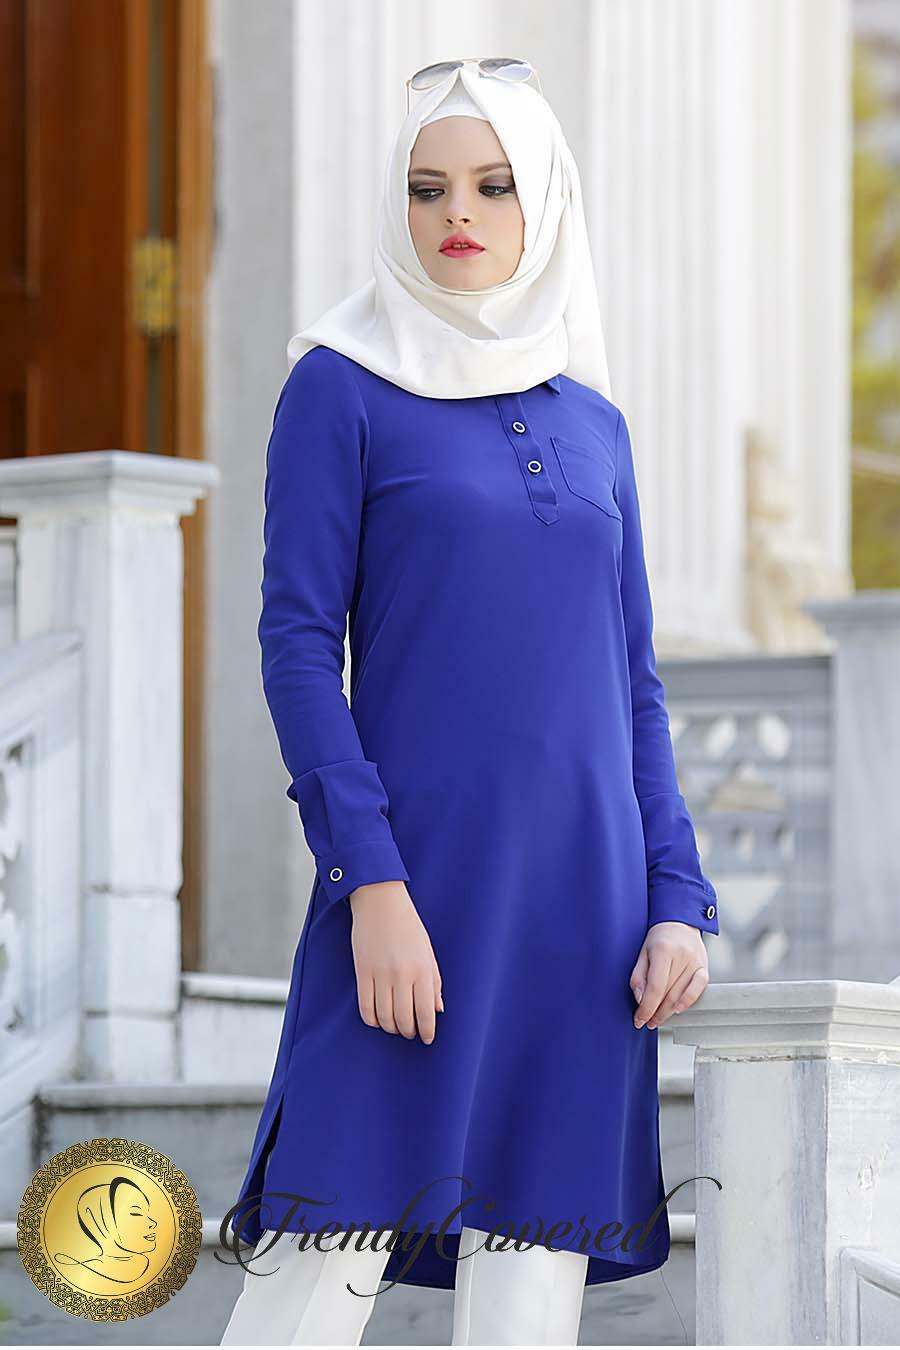 bermuda muslim dating 100 free muslim dating sites muslimfacescom - biggest singles website and networking service for members of the muslim faith.